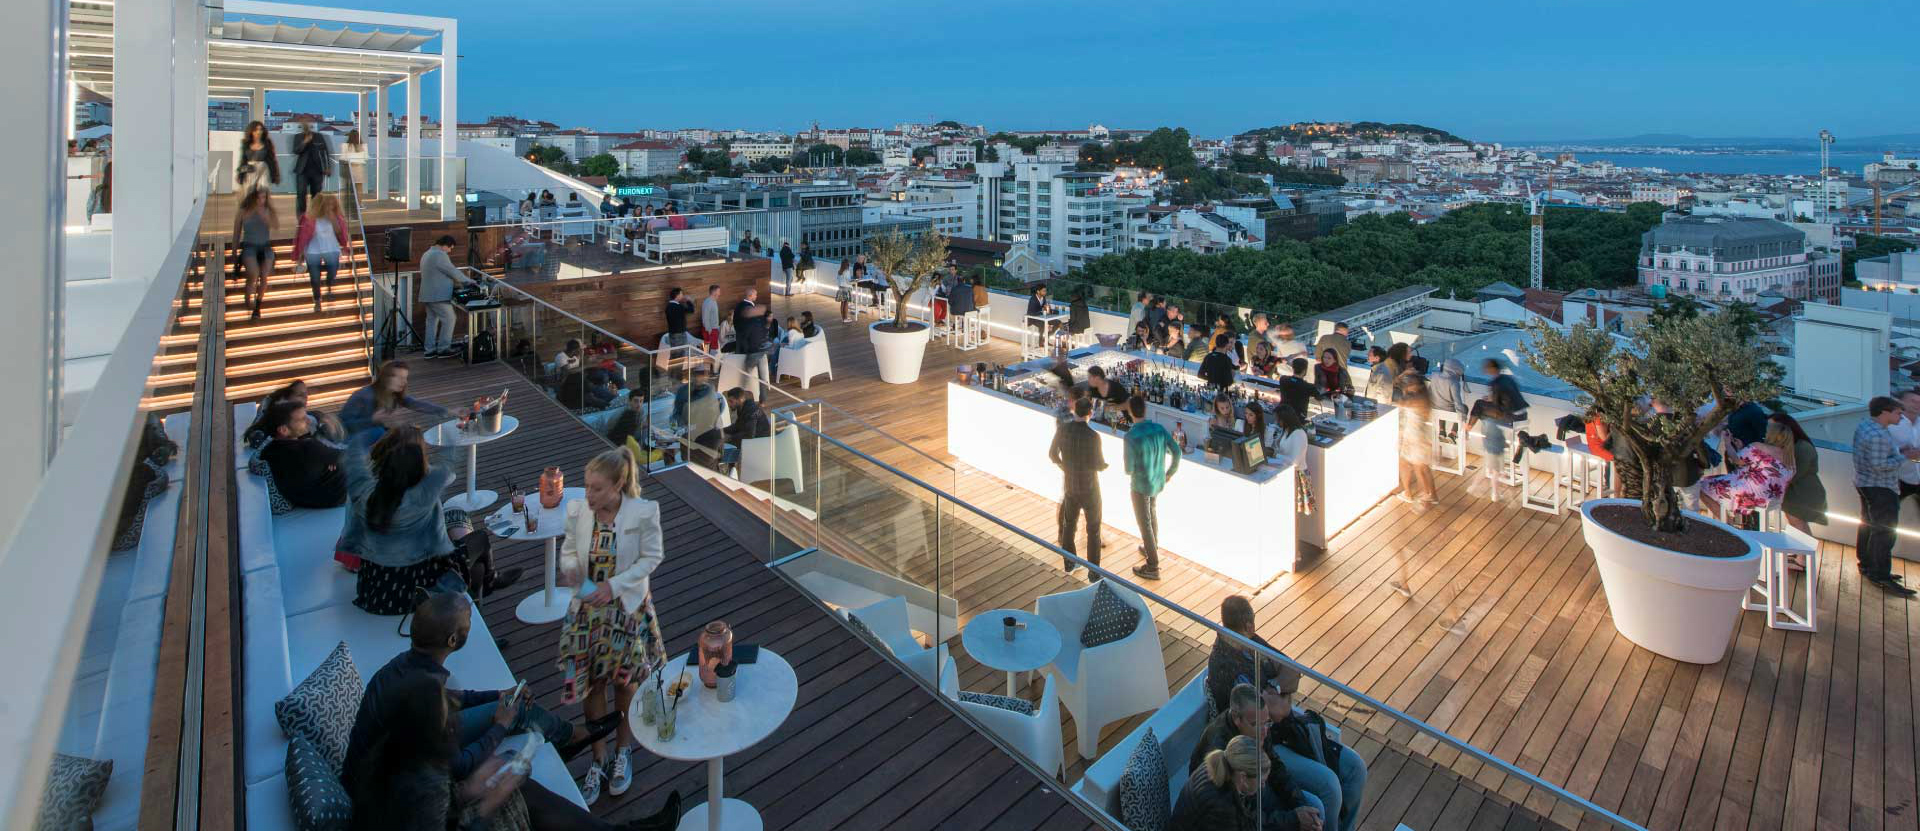 Best rooftops in Portugal: sky bar hotel tivoli what to do in lisbon What To Do In Lisbon: 48 Hours In The Capital Carrocel 3 64